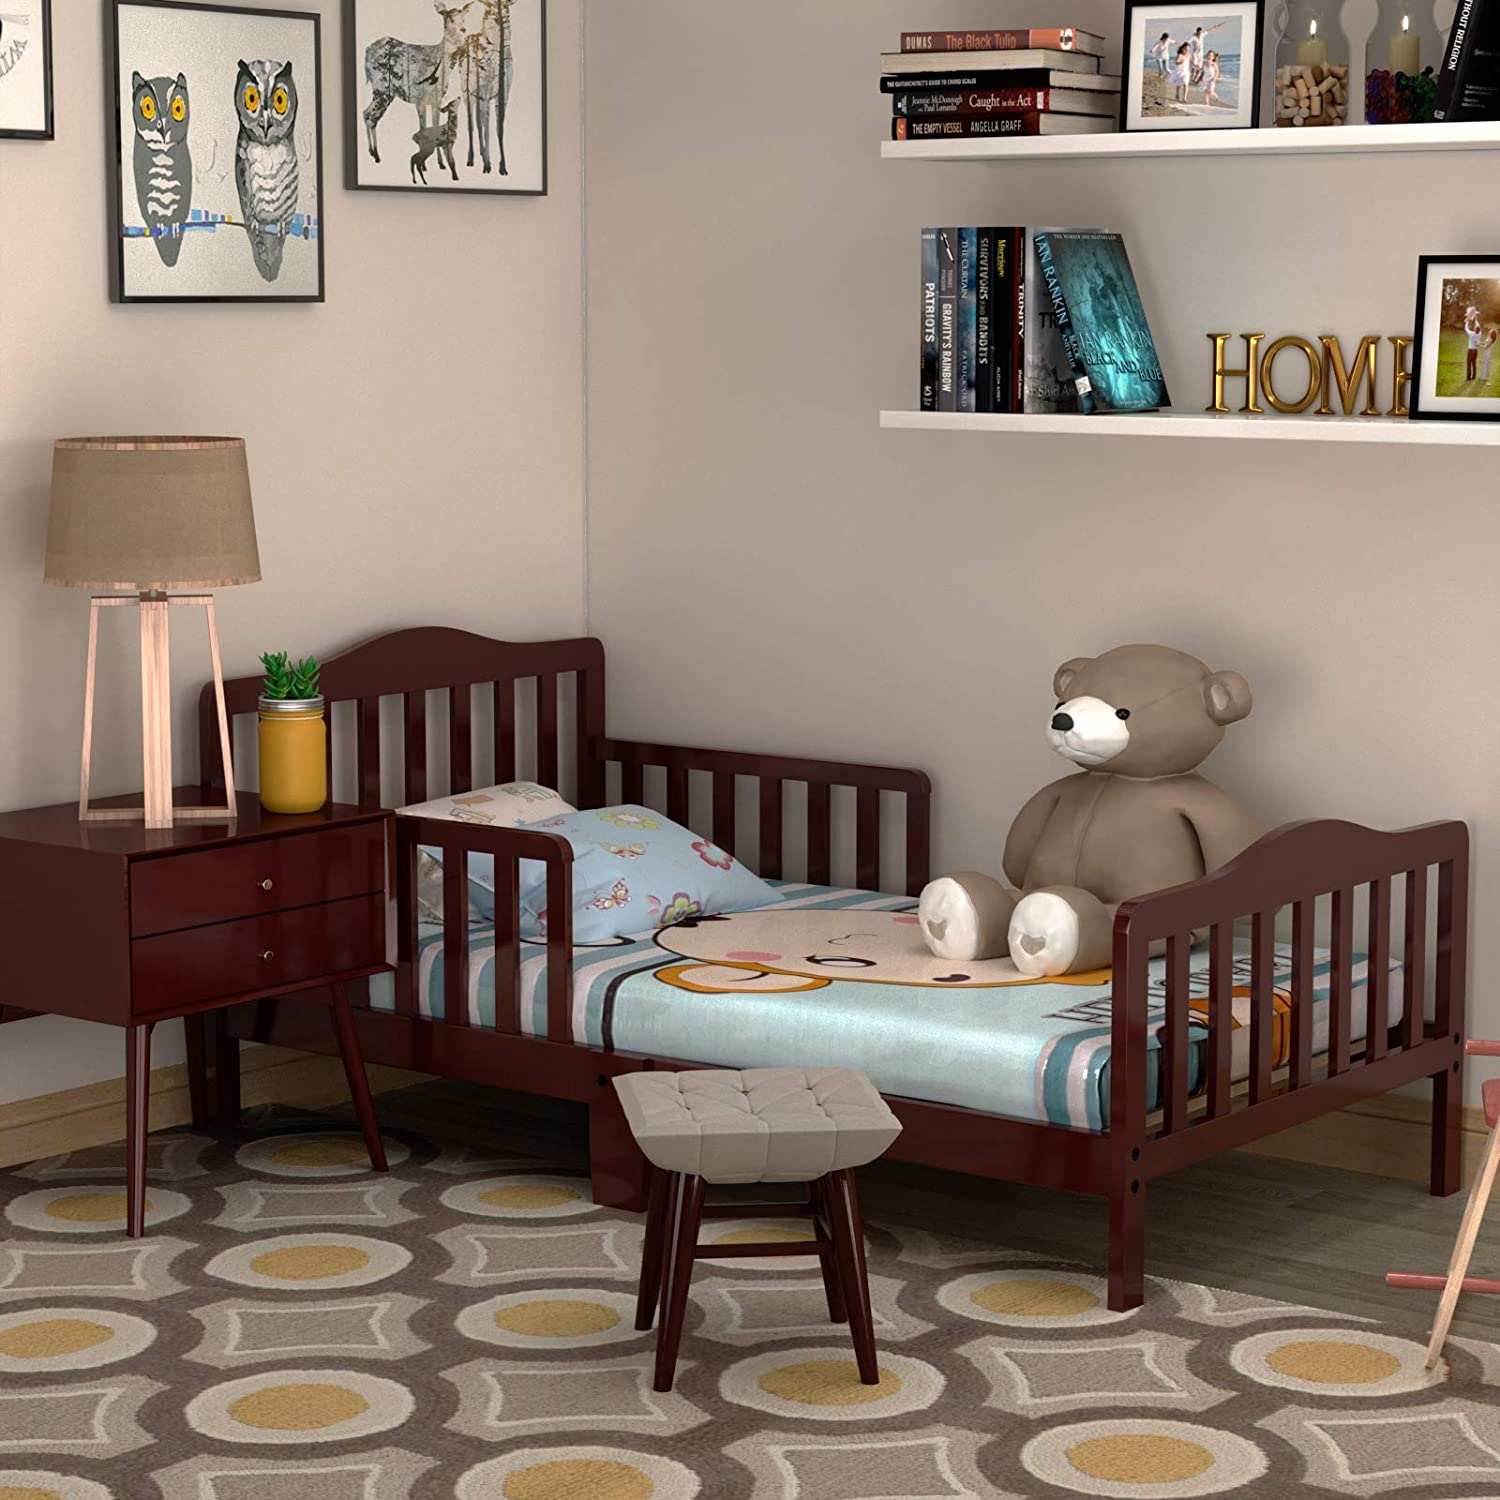 Children Sleeping Bedroom Furniture Sturdy Wooden Frame Extra Safety for Kids Children Wooden Baby Toddler Bed with Safety Guardrails Espresso Color